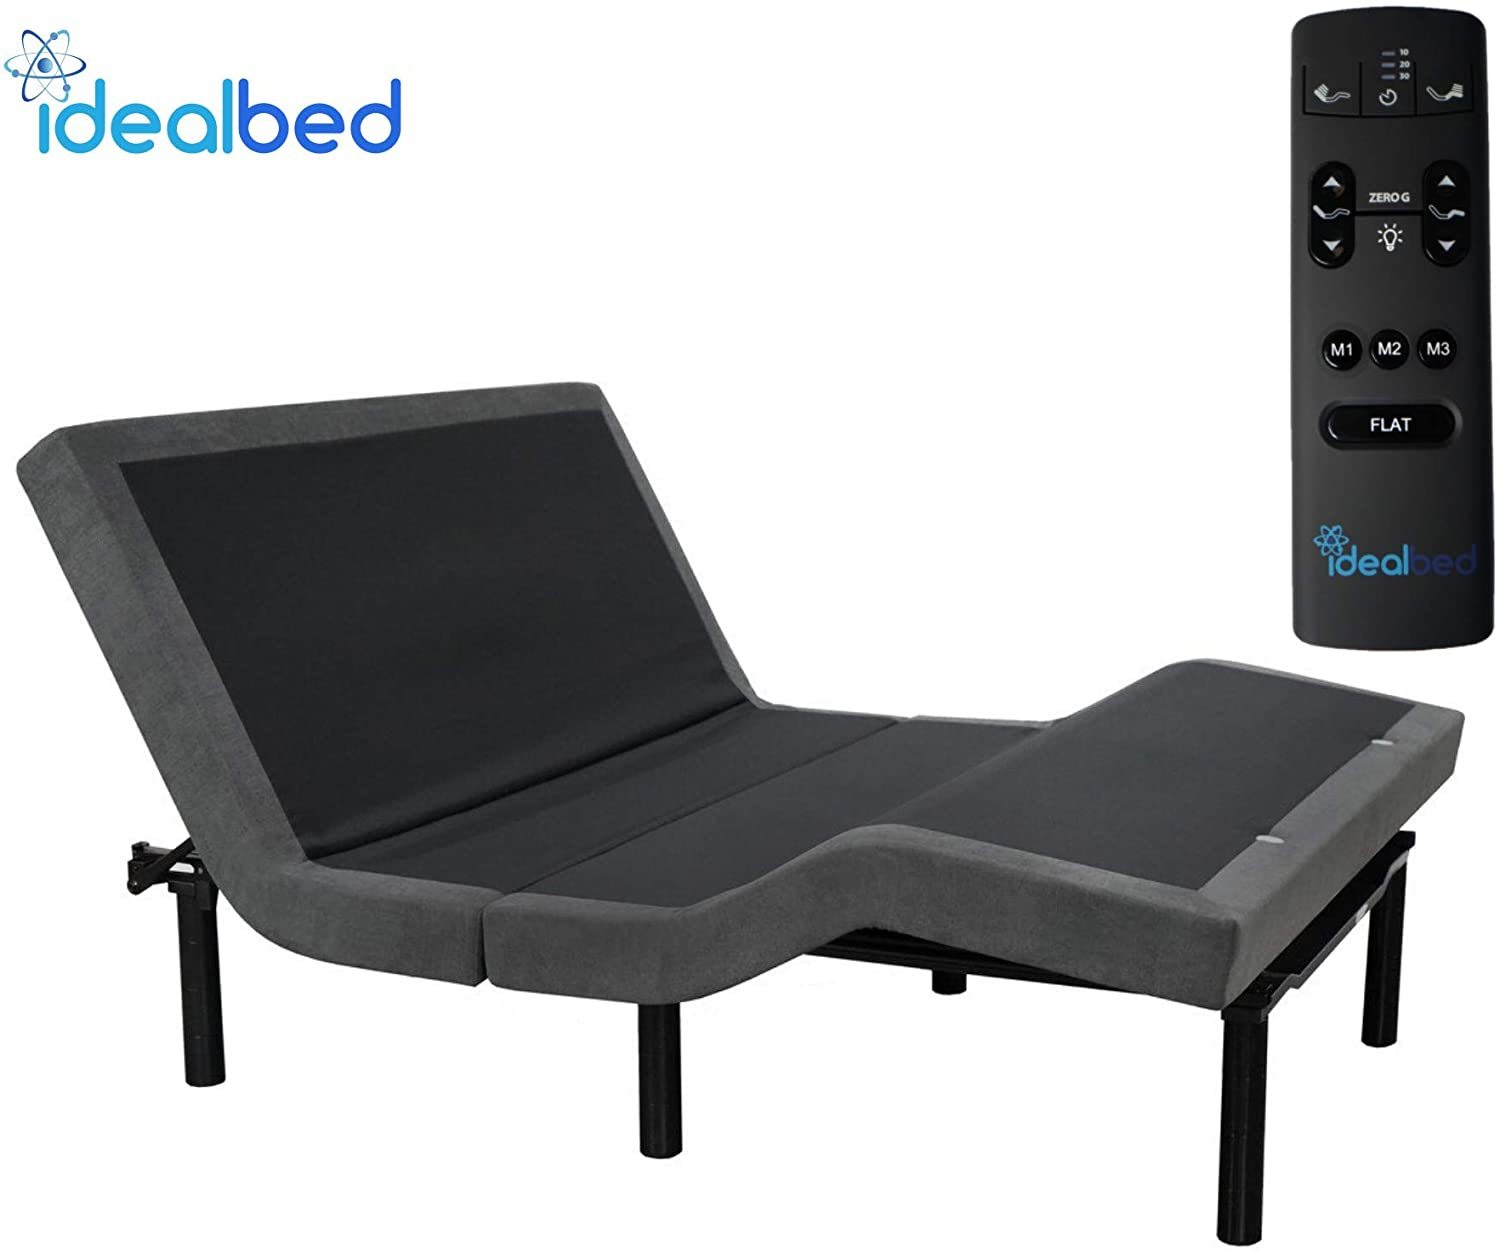 iDealBed 5i Review - Remote Control